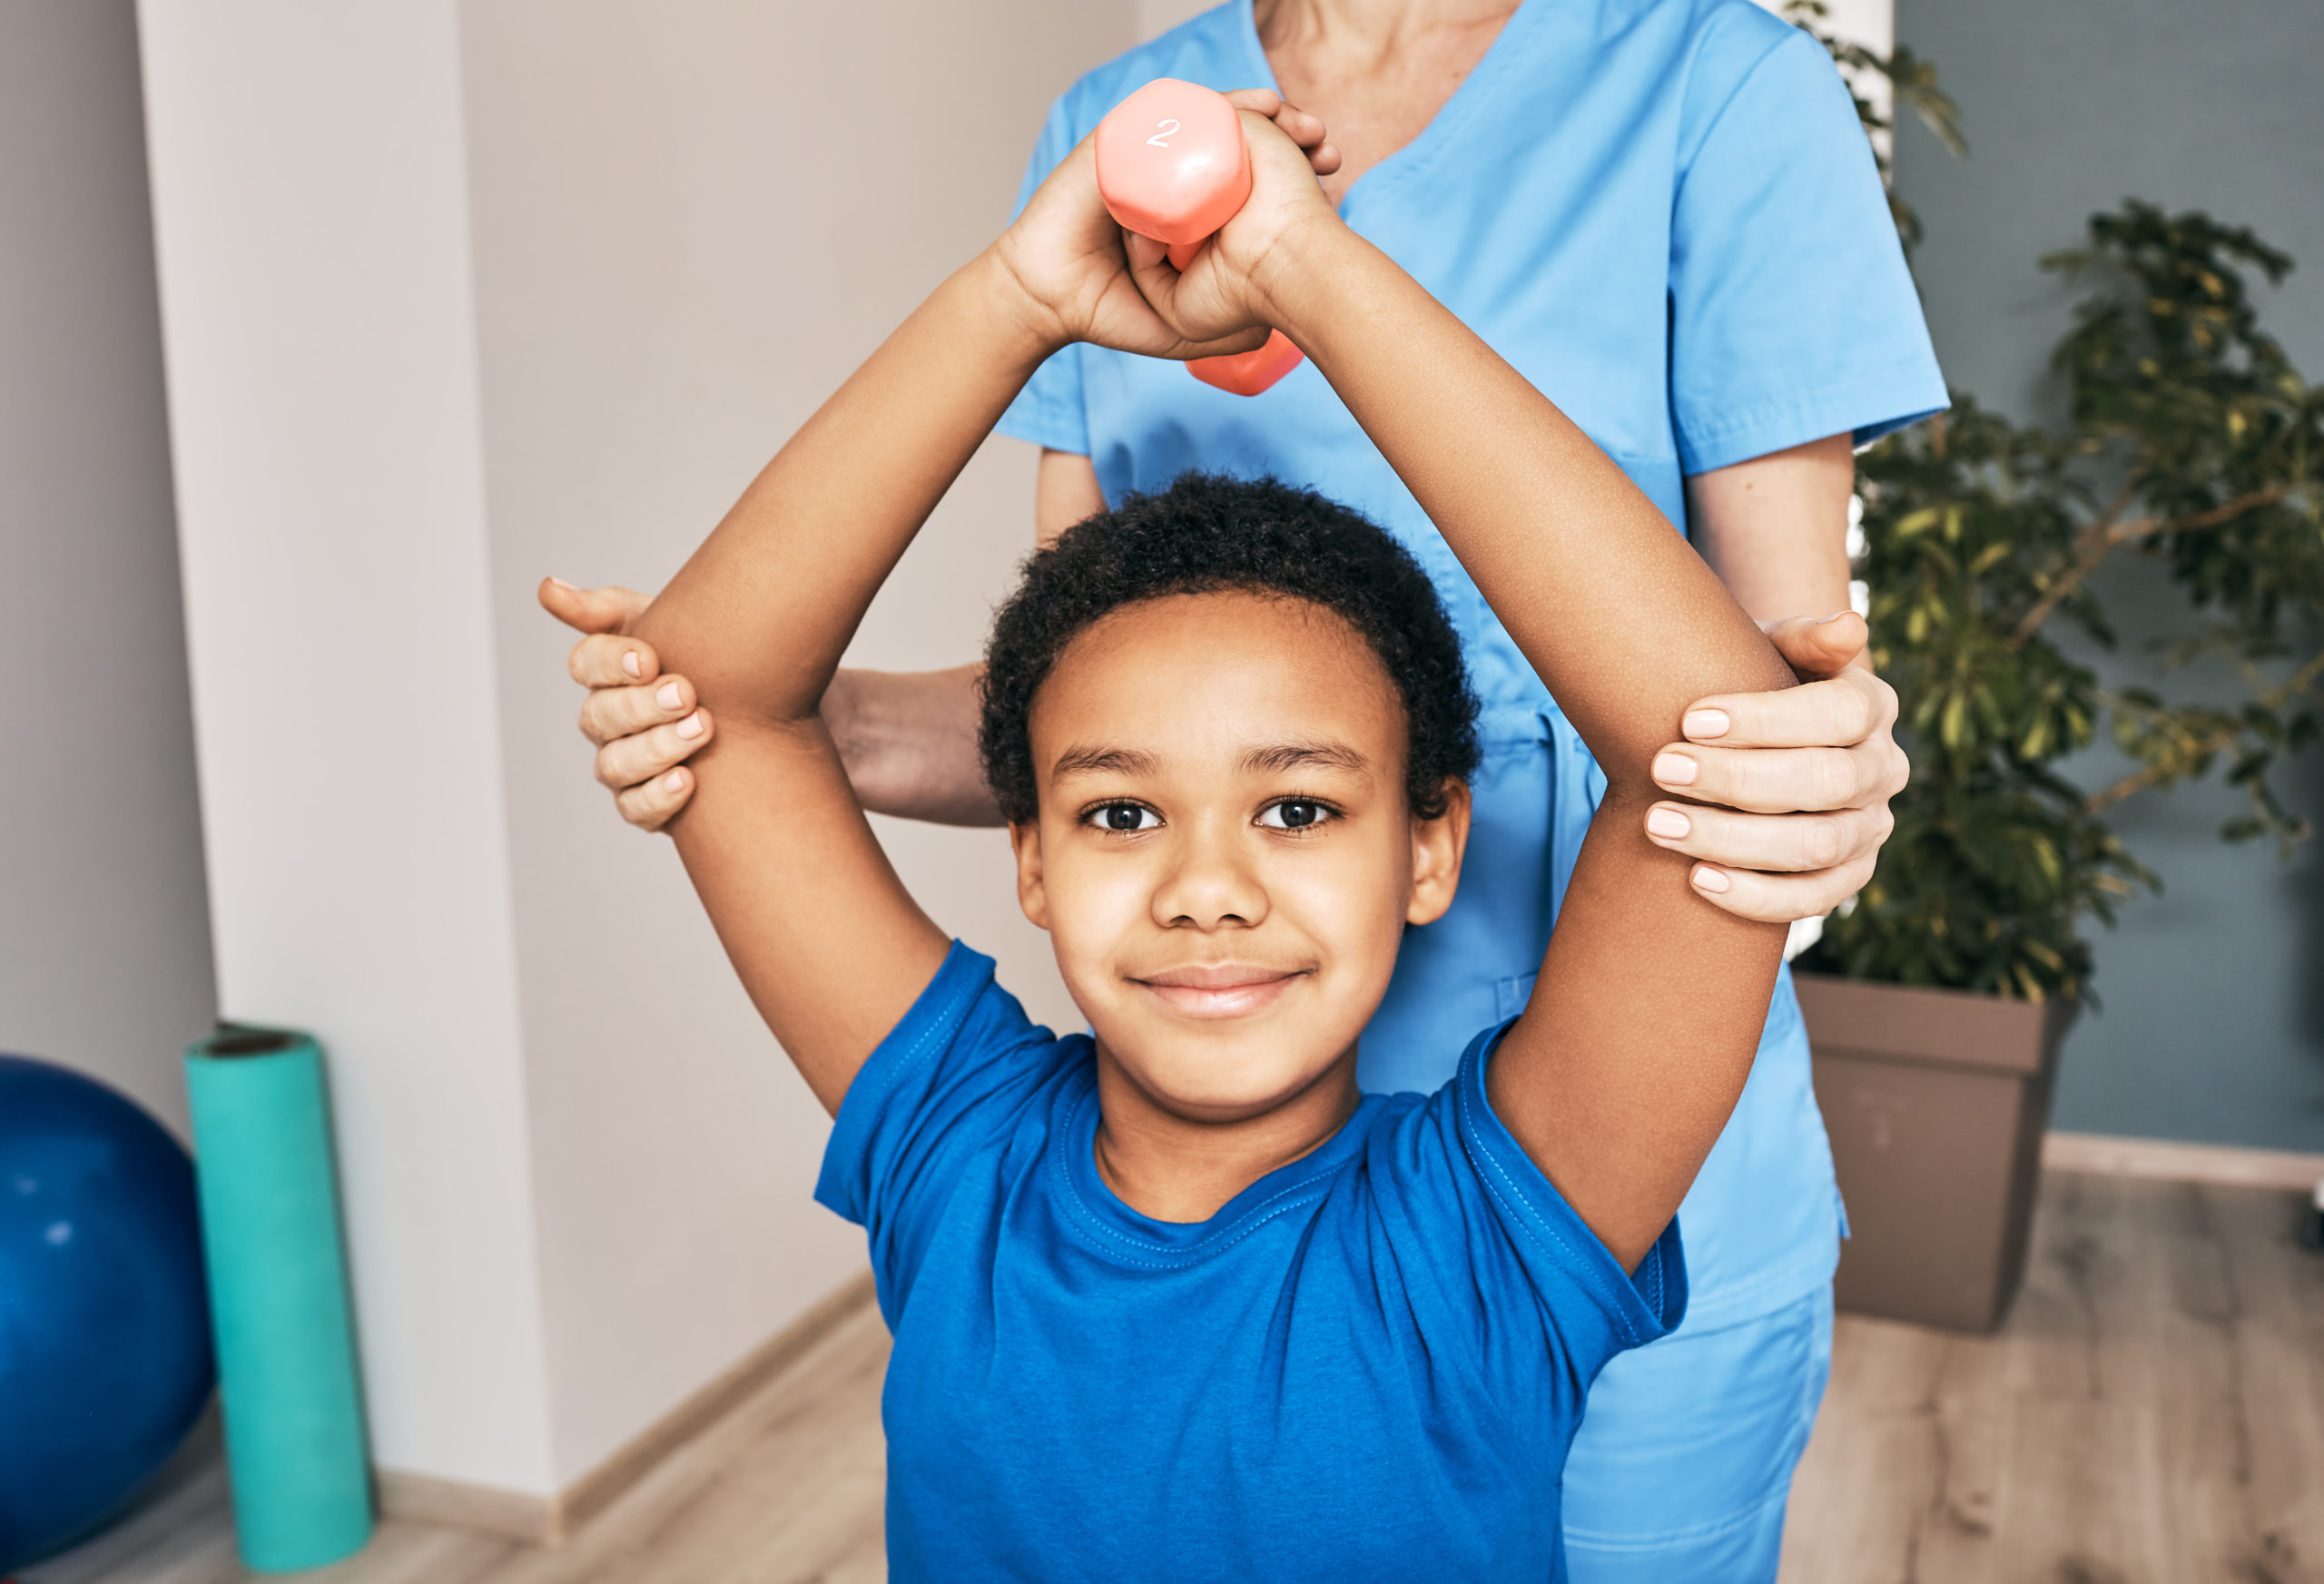 YOUTH SPORTS MEDICINE REHABILITATION